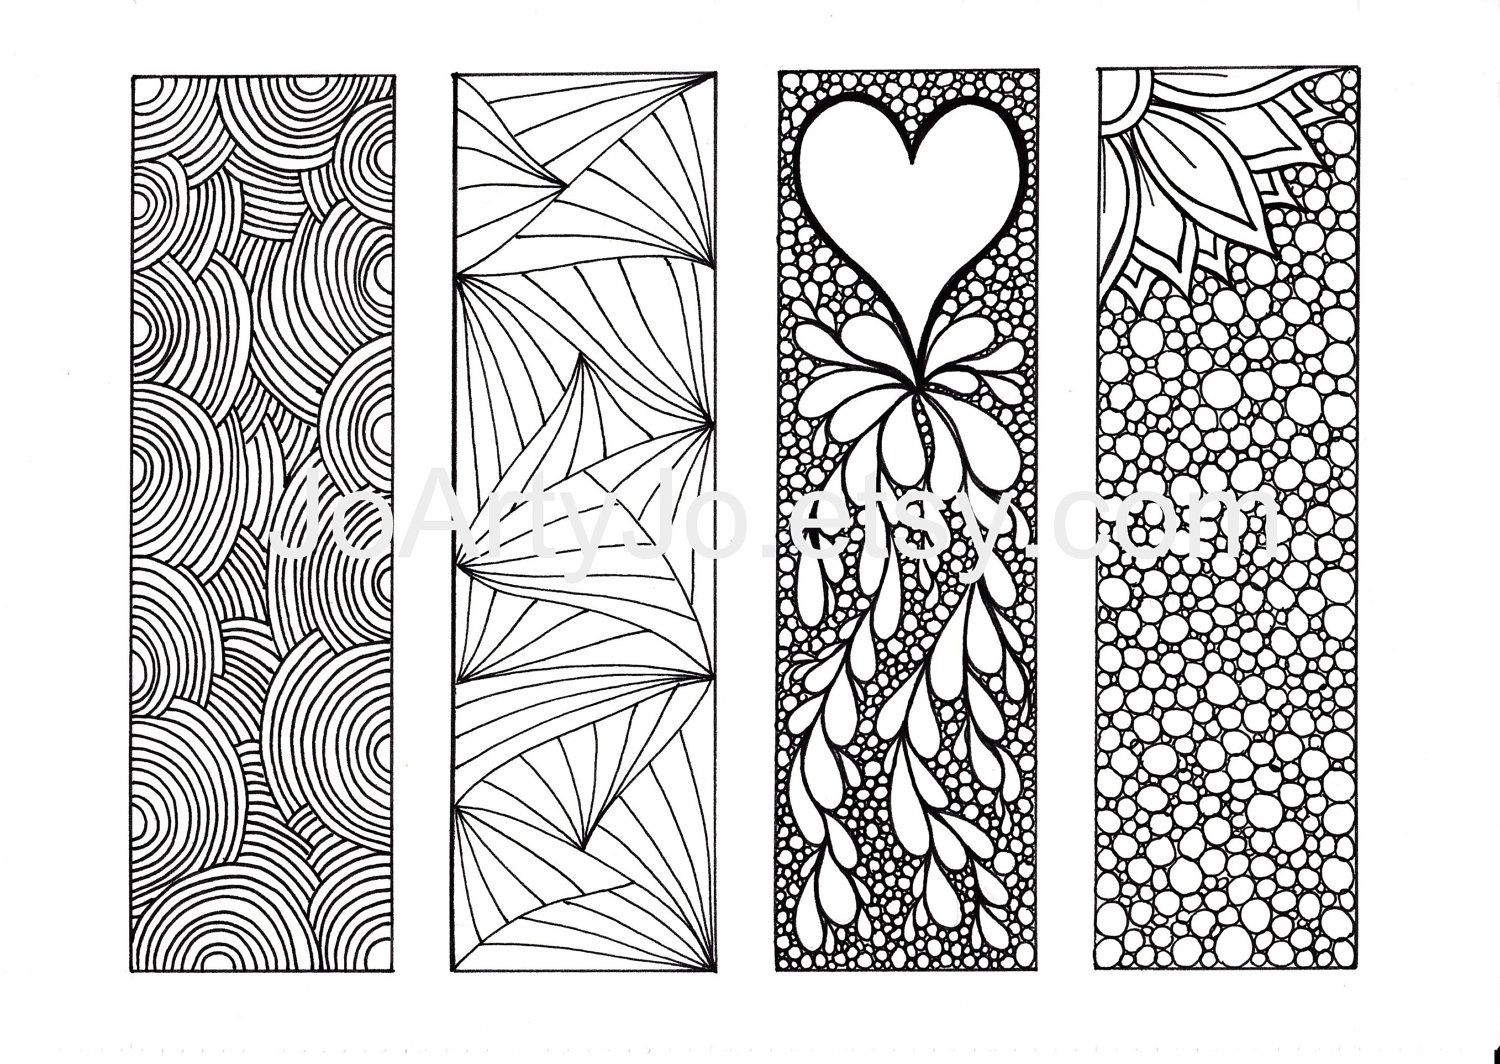 Printable Bookmarks To Color For Girls | Postrendy intended for Cute Bookmarks To Print Black And White 27250